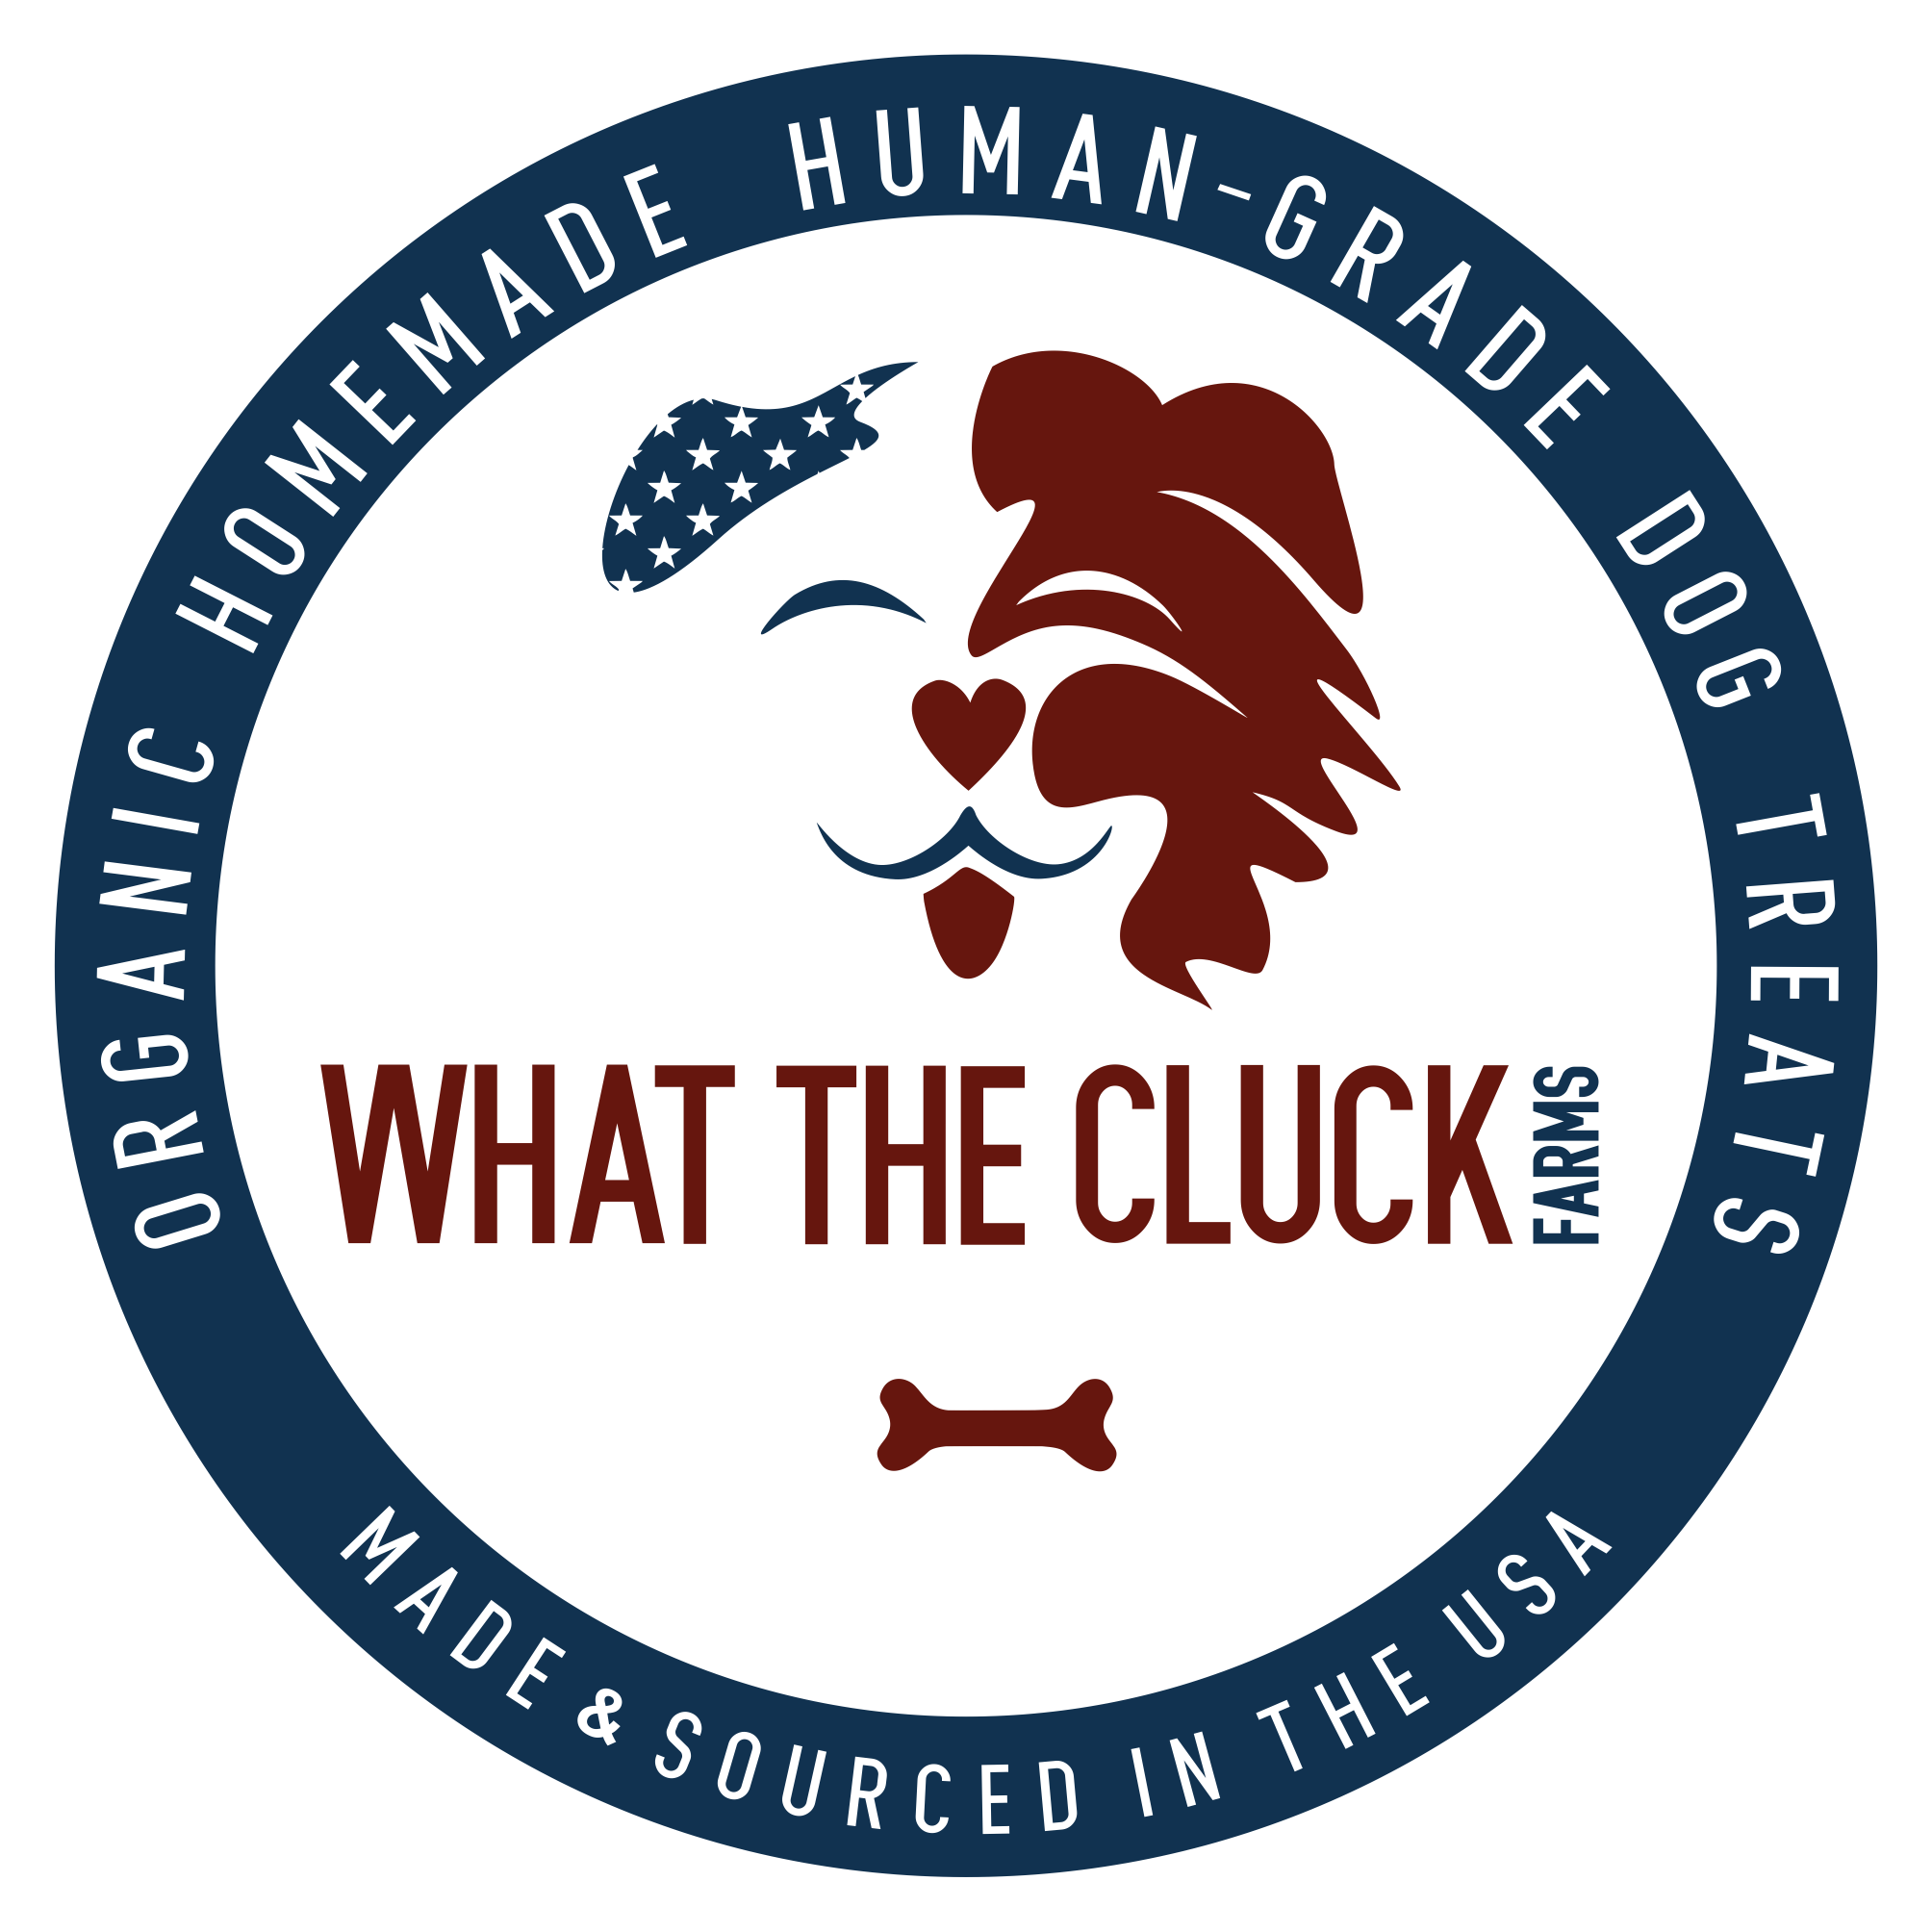 Funny & catchy design for WHAT THE CLUCK farms (organic, homemade, human-grade dog treats)